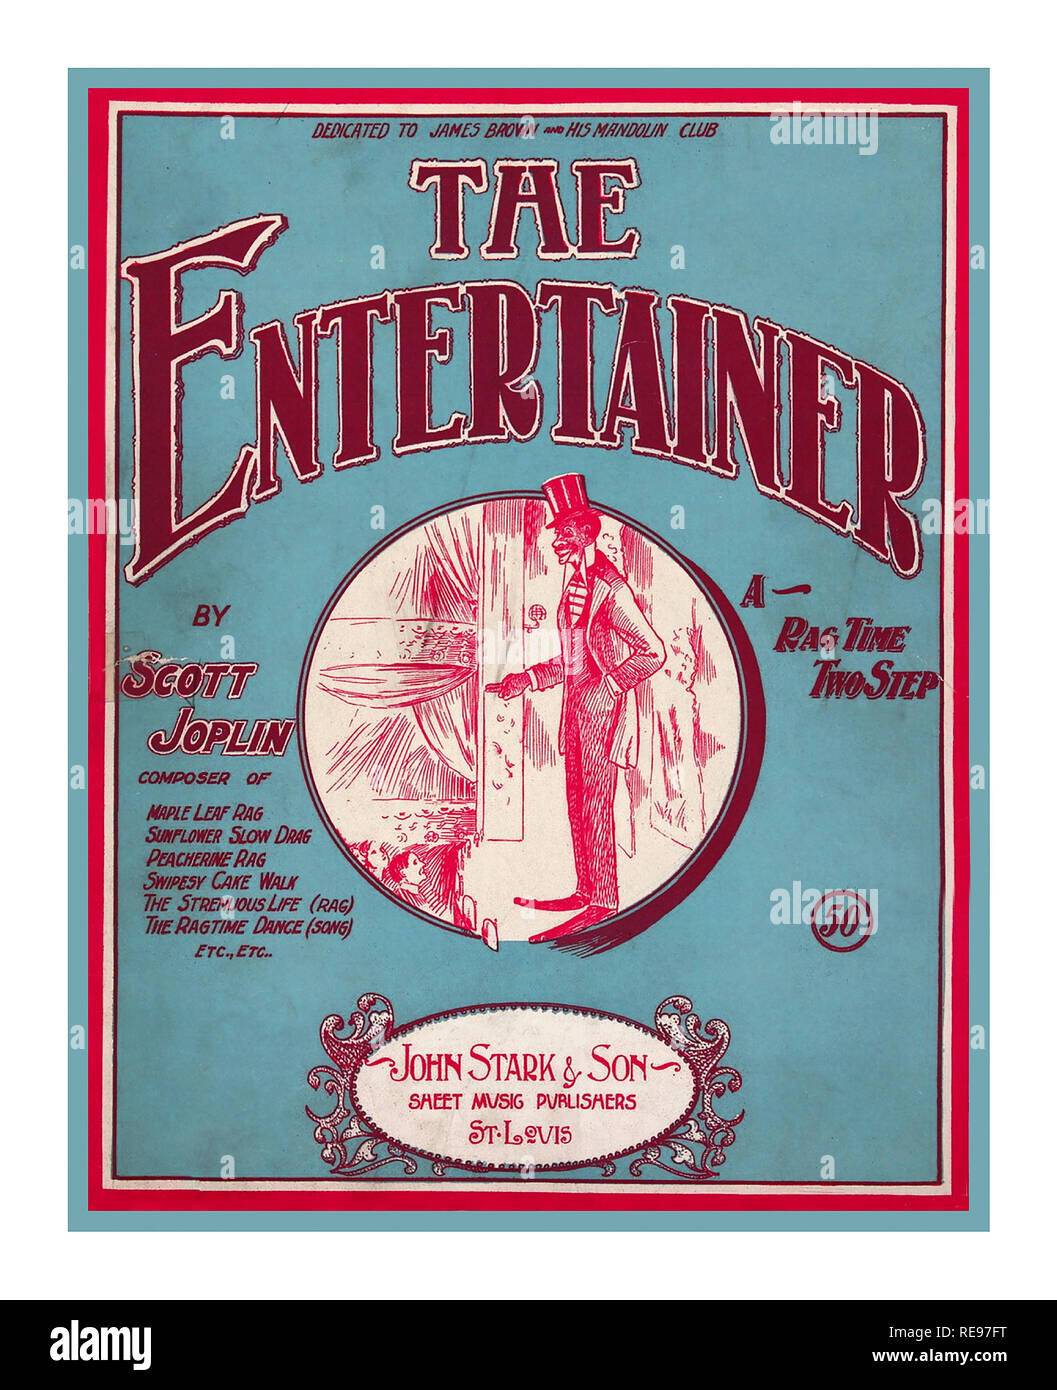 Vintage Sheet Music Front Cover for 'The Entertainer'  a 1902 classic piano rag written by Scott Joplin It was sold first as sheet music, and in the 1910s as piano rolls that would play on player pianos. The first recording was by blues and ragtime musicians, the Blue Boys in 1928, played on mandolin and guitar  As one of the classics of ragtime, it returned to international prominence as part of the ragtime revival in the 1970s, when it was used as the theme music for the 1973 Oscar-winning film The Sting. - Stock Image